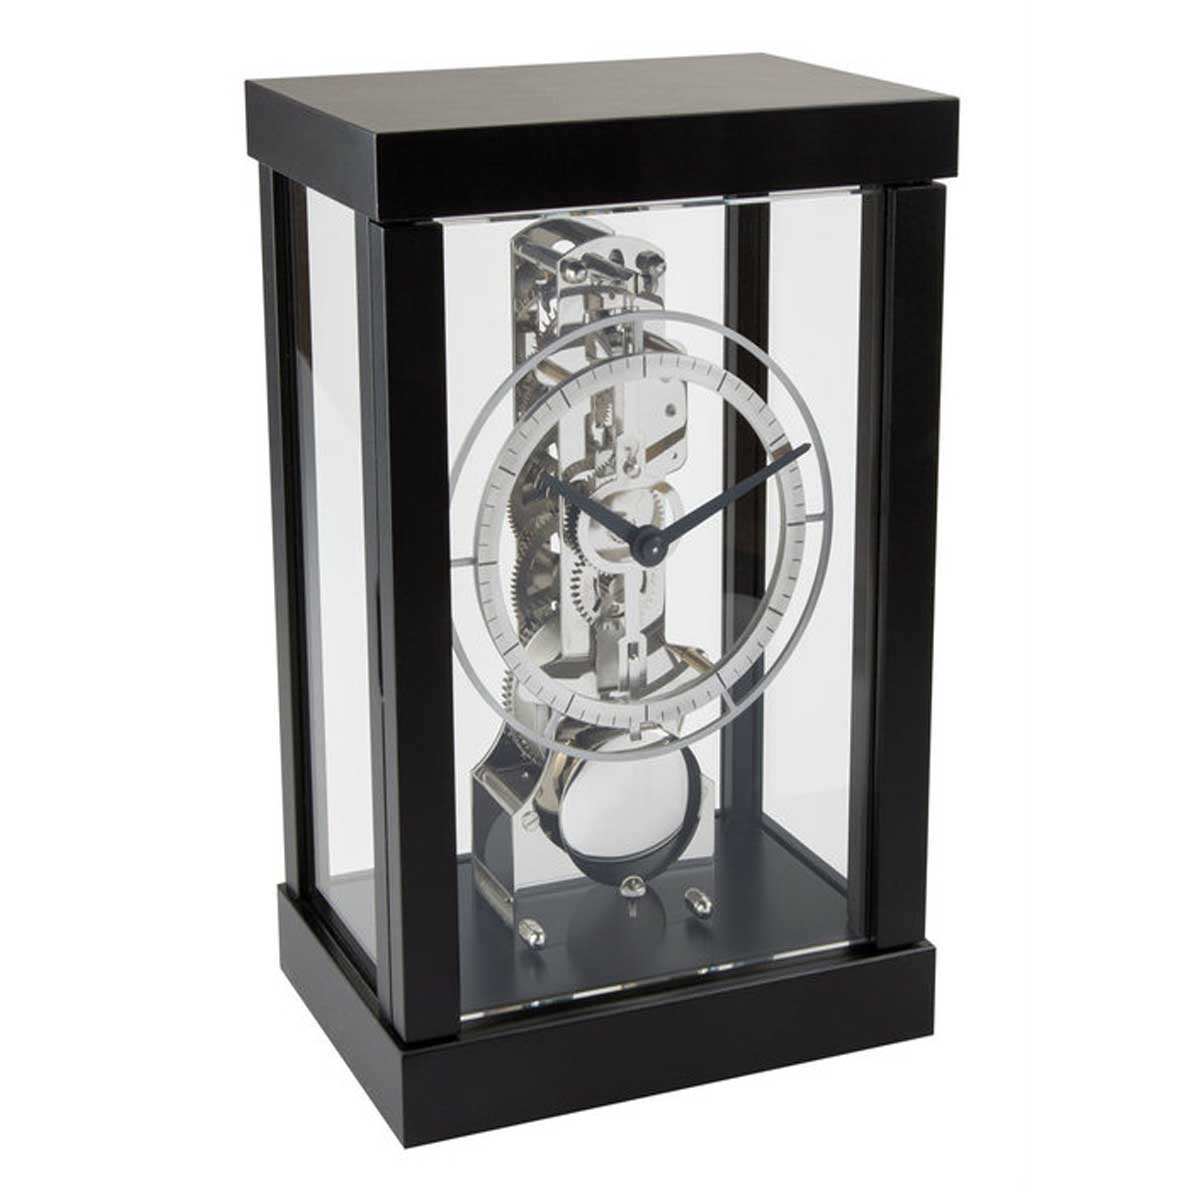 BINGLEY 23048-740791 Mantel Clock Black